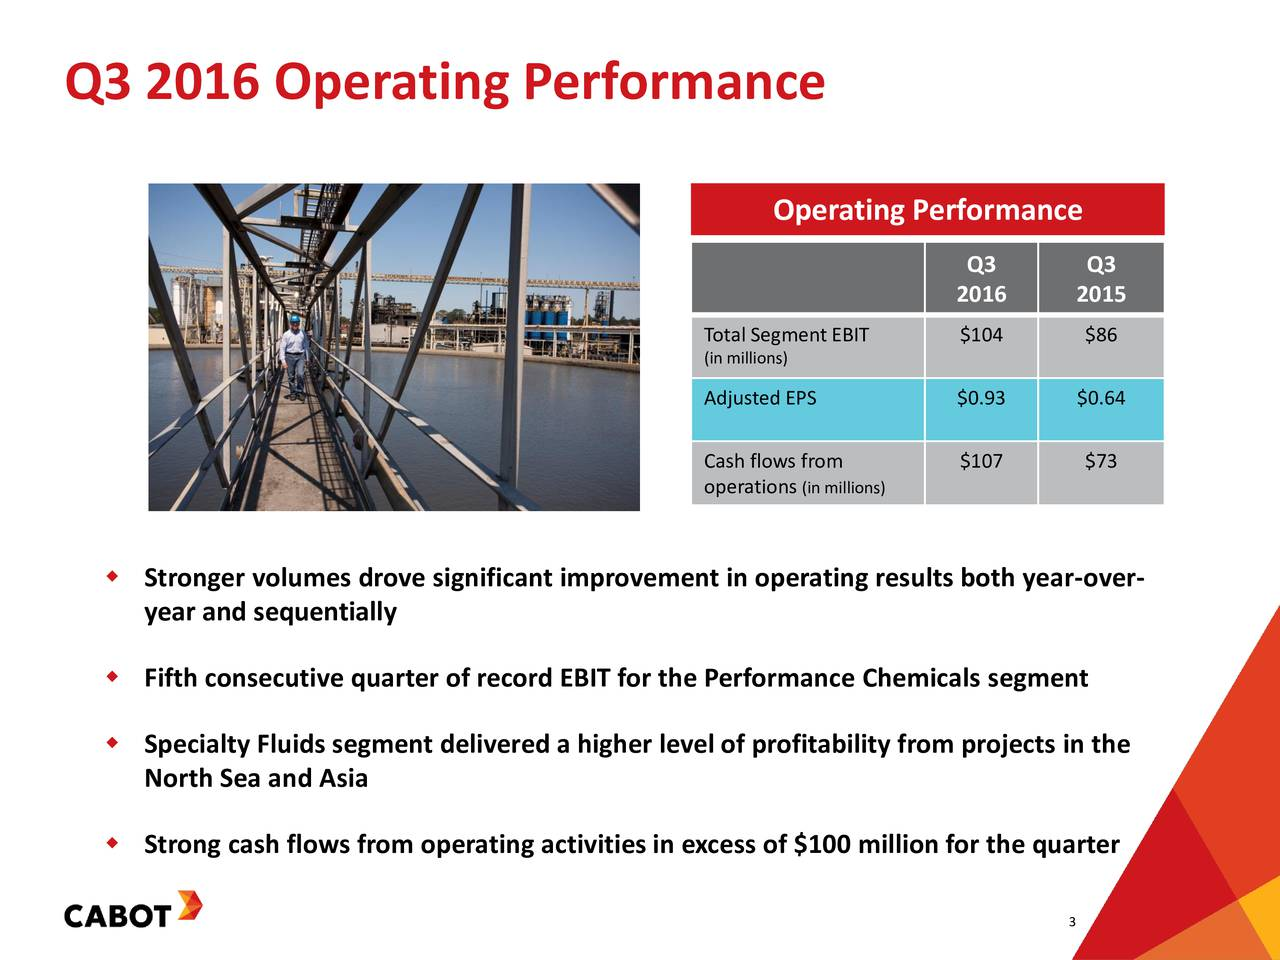 Operating Performance Q3 Q3 2016 2015 Total Segment EBIT $104 $86 (in millions) Adjusted EPS $0.93 $0.64 Cash flows from $107 $73 operation(in millions) Stronger volumes drove significant improvement in operating results both year-over- year and sequentially Fifth consecutive quarter of record EBIT for the Performance Chemicals segment Specialty Fluids segment delivered a higher level of profitability from projects in the North Sea and Asia Strong cash flows from operating activities in excess of $100 million for the quarter 3